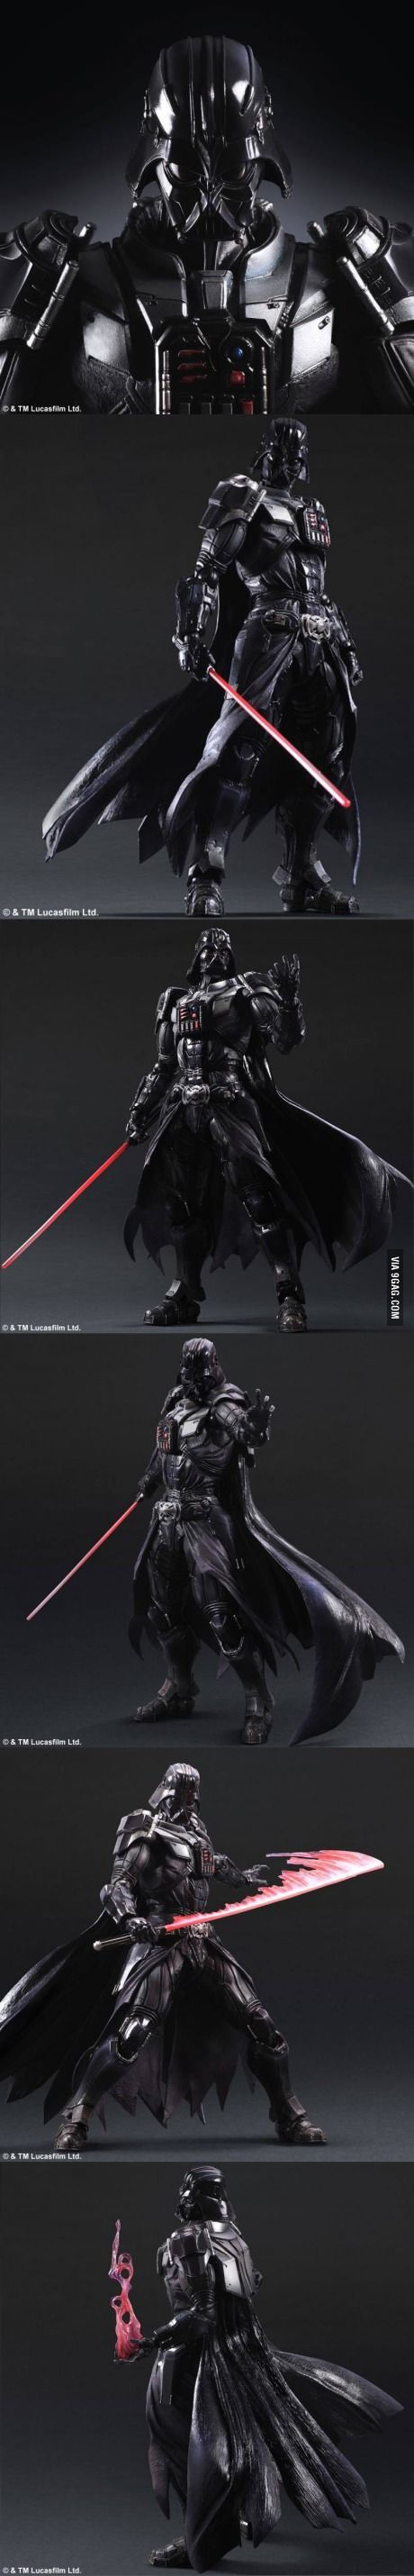 Play Arts Kai - Darth Vader, thoughts?